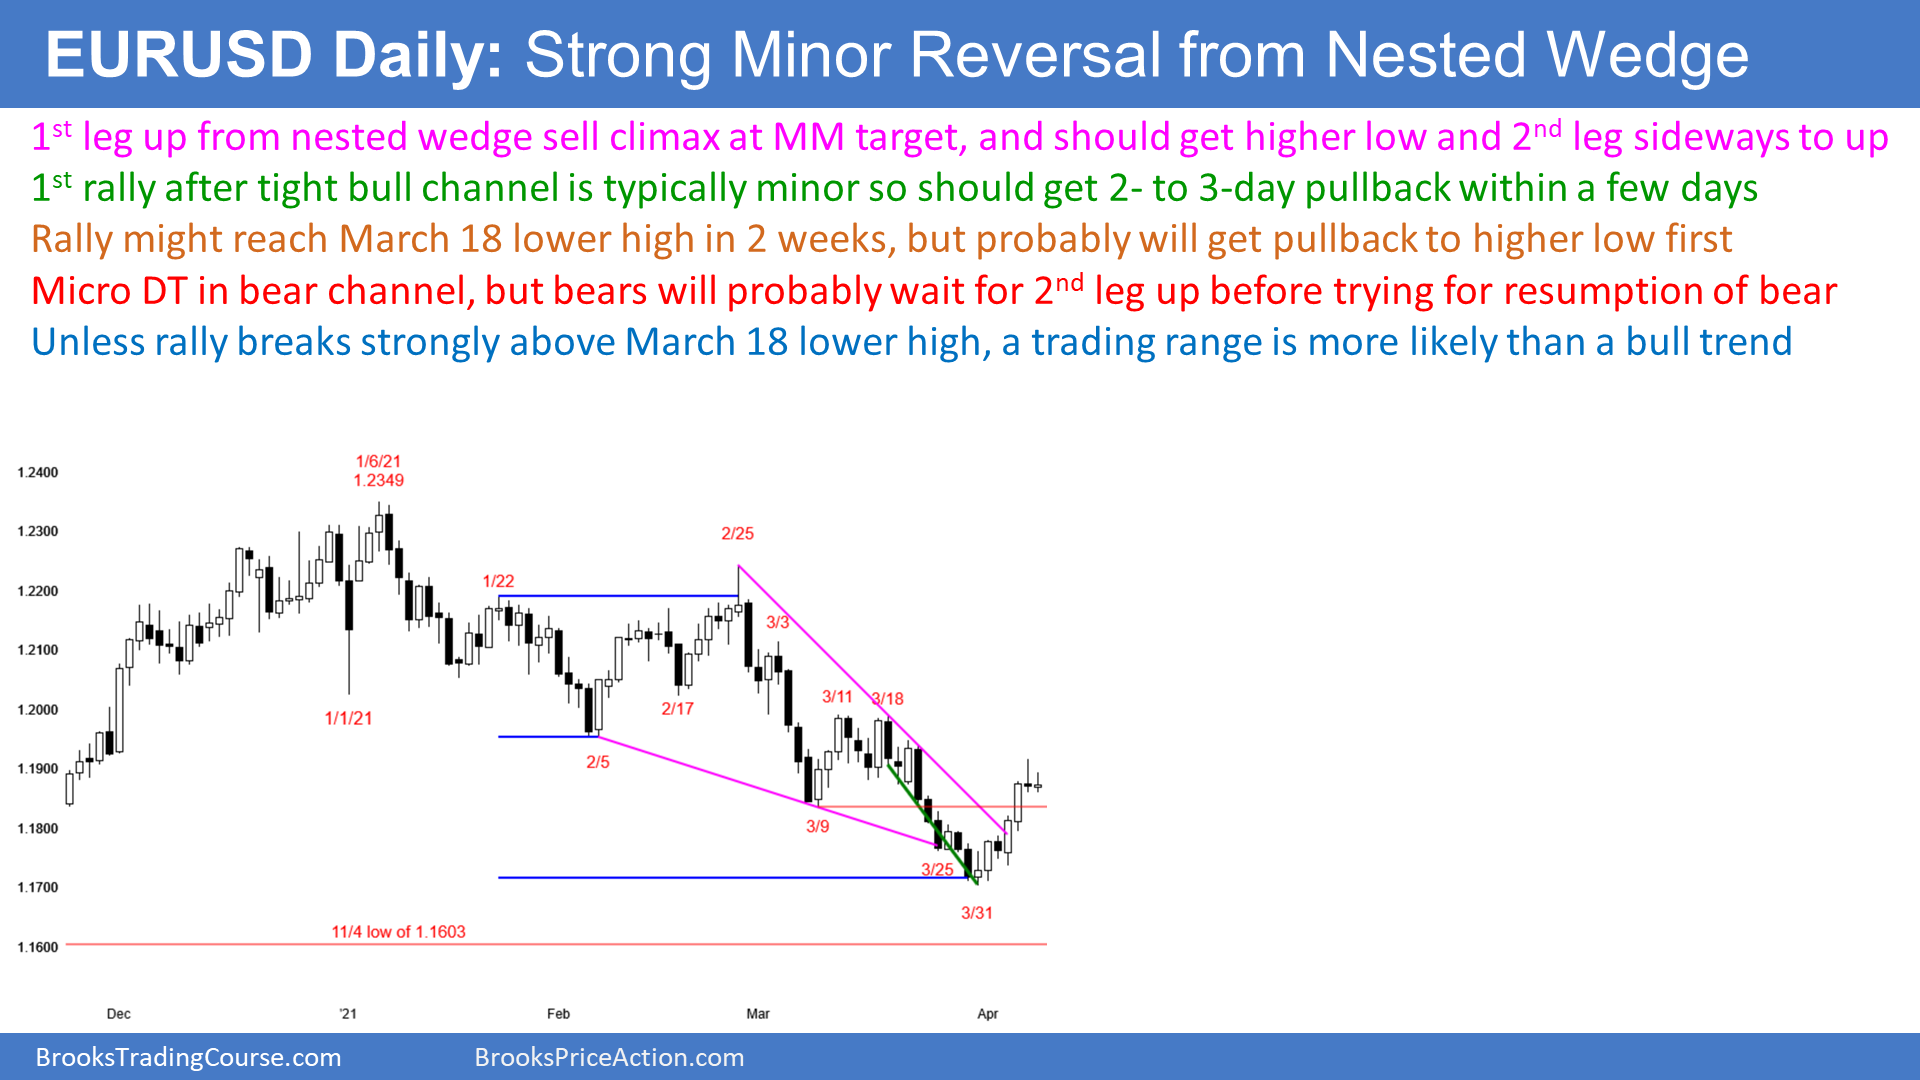 EUR/USD Strong Minor Reversal From Nested Wedge - Daily Chart